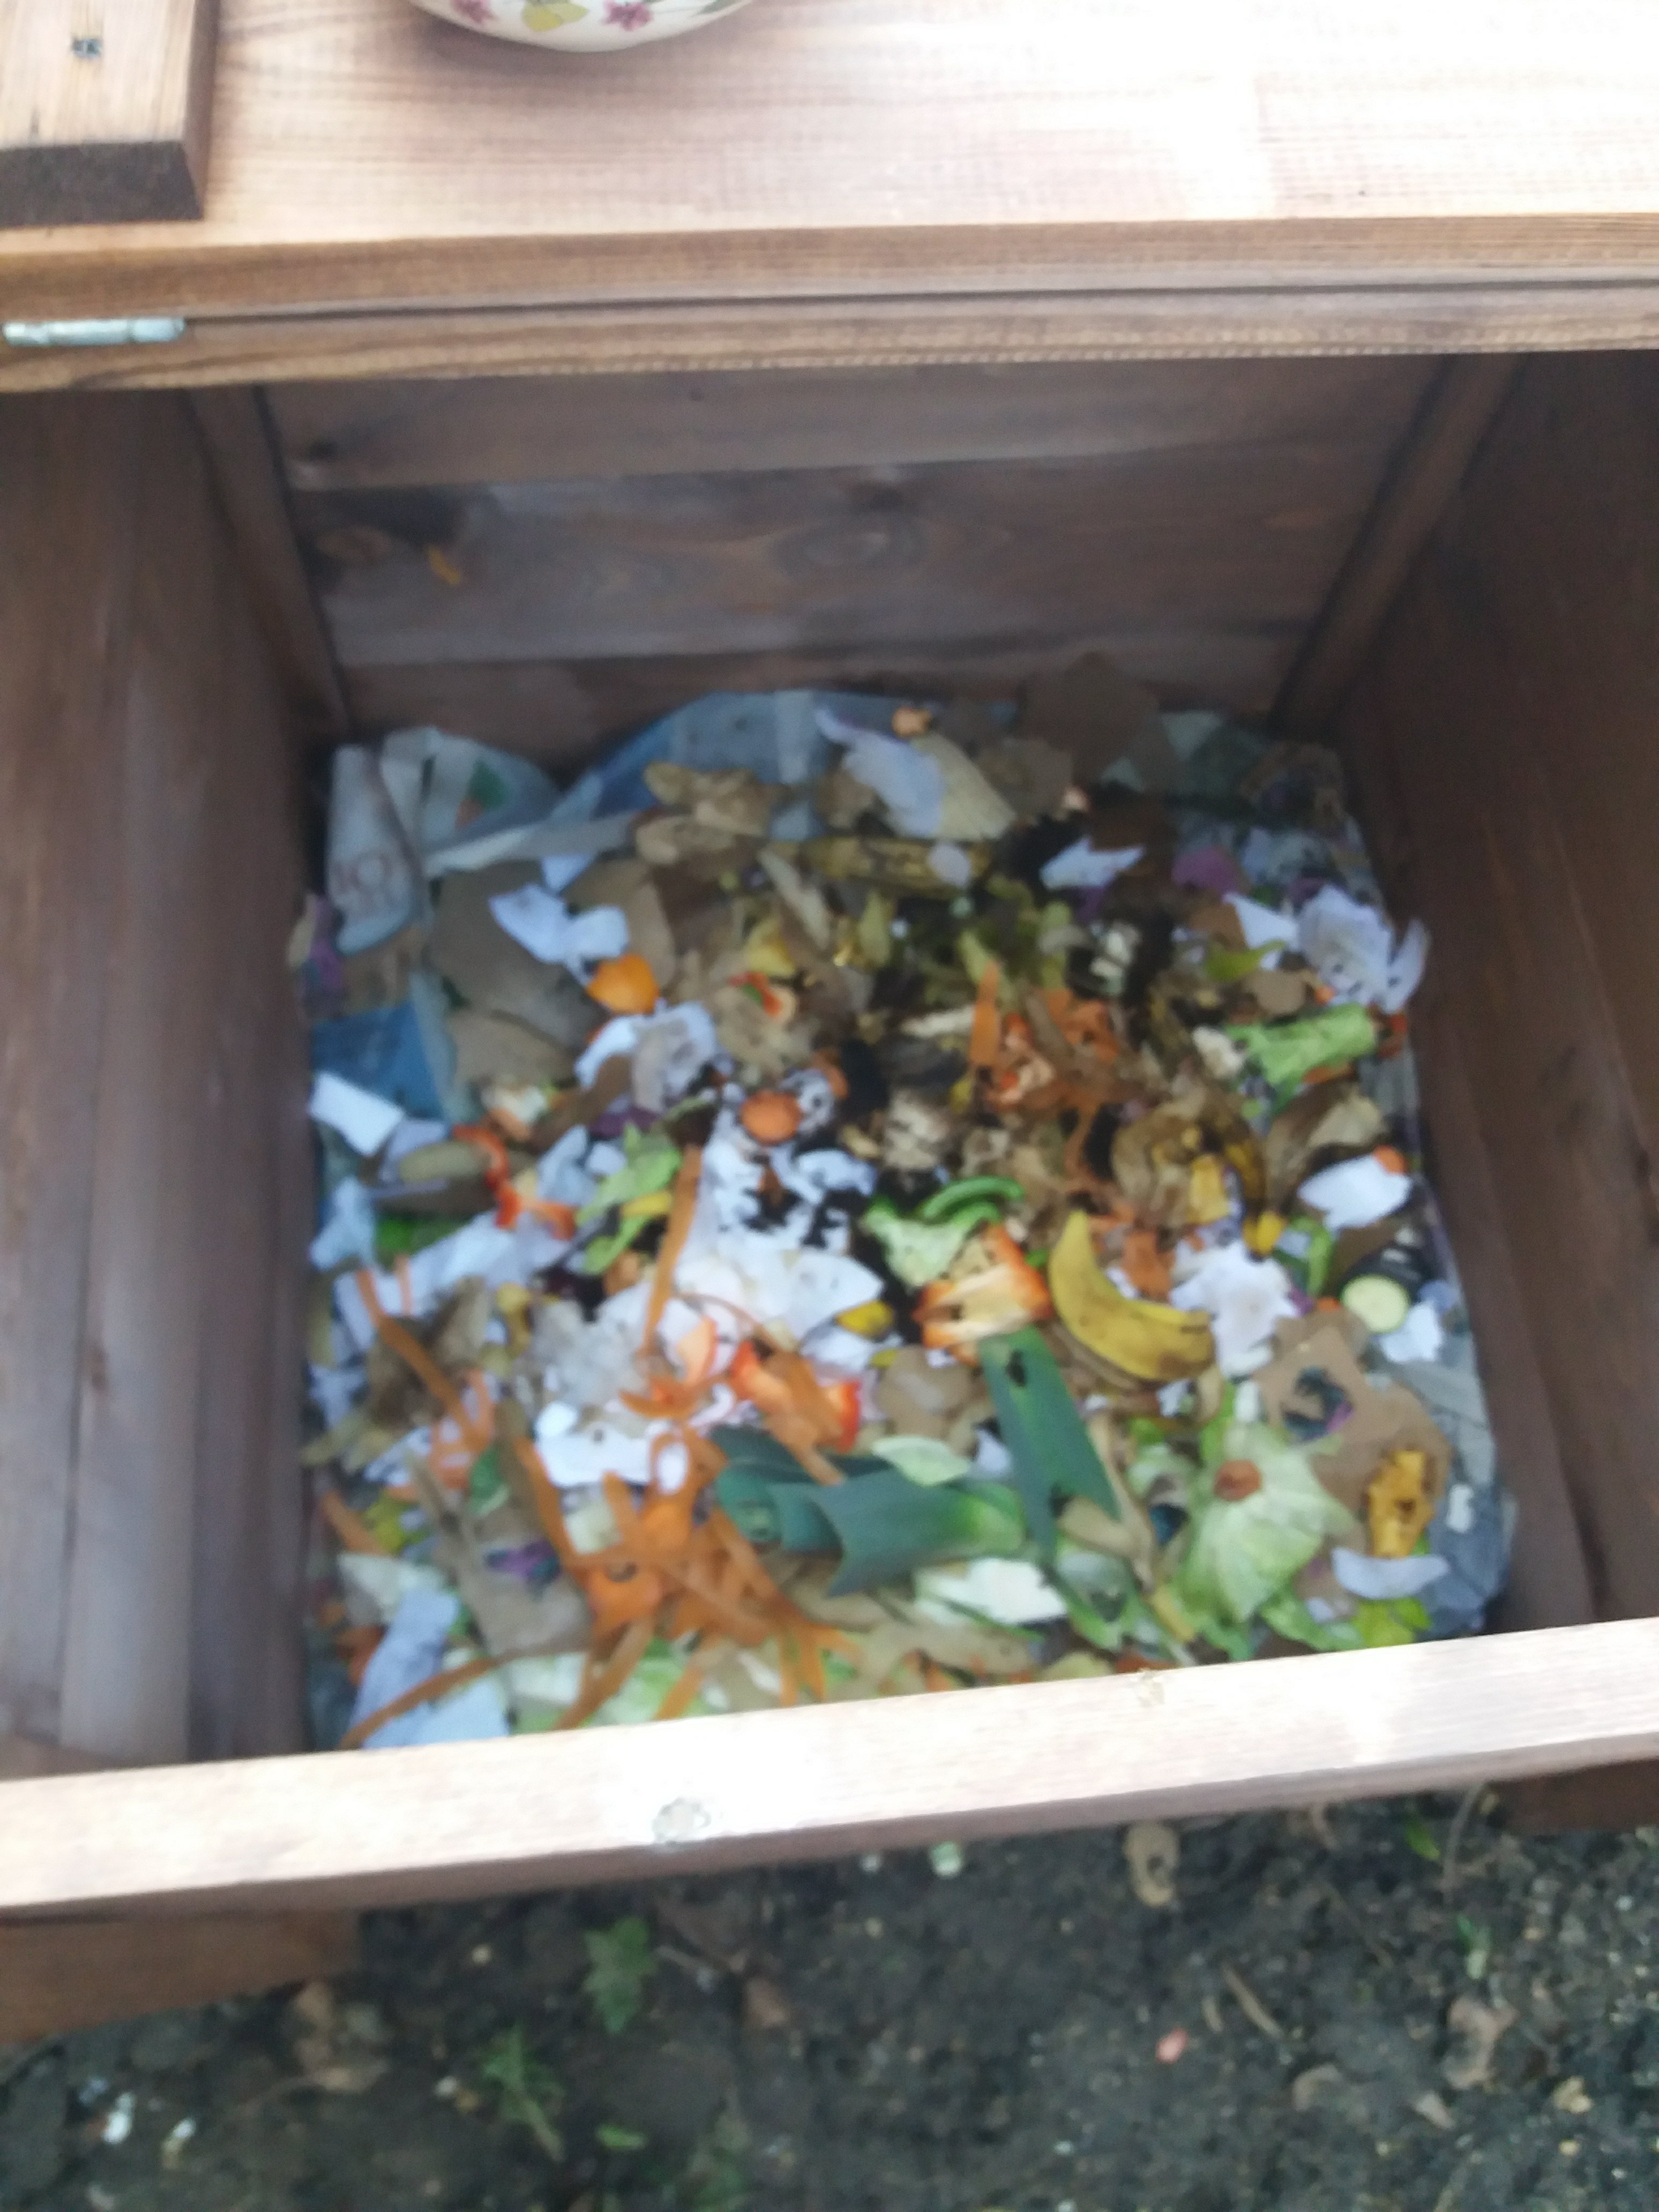 food scraps in the compost